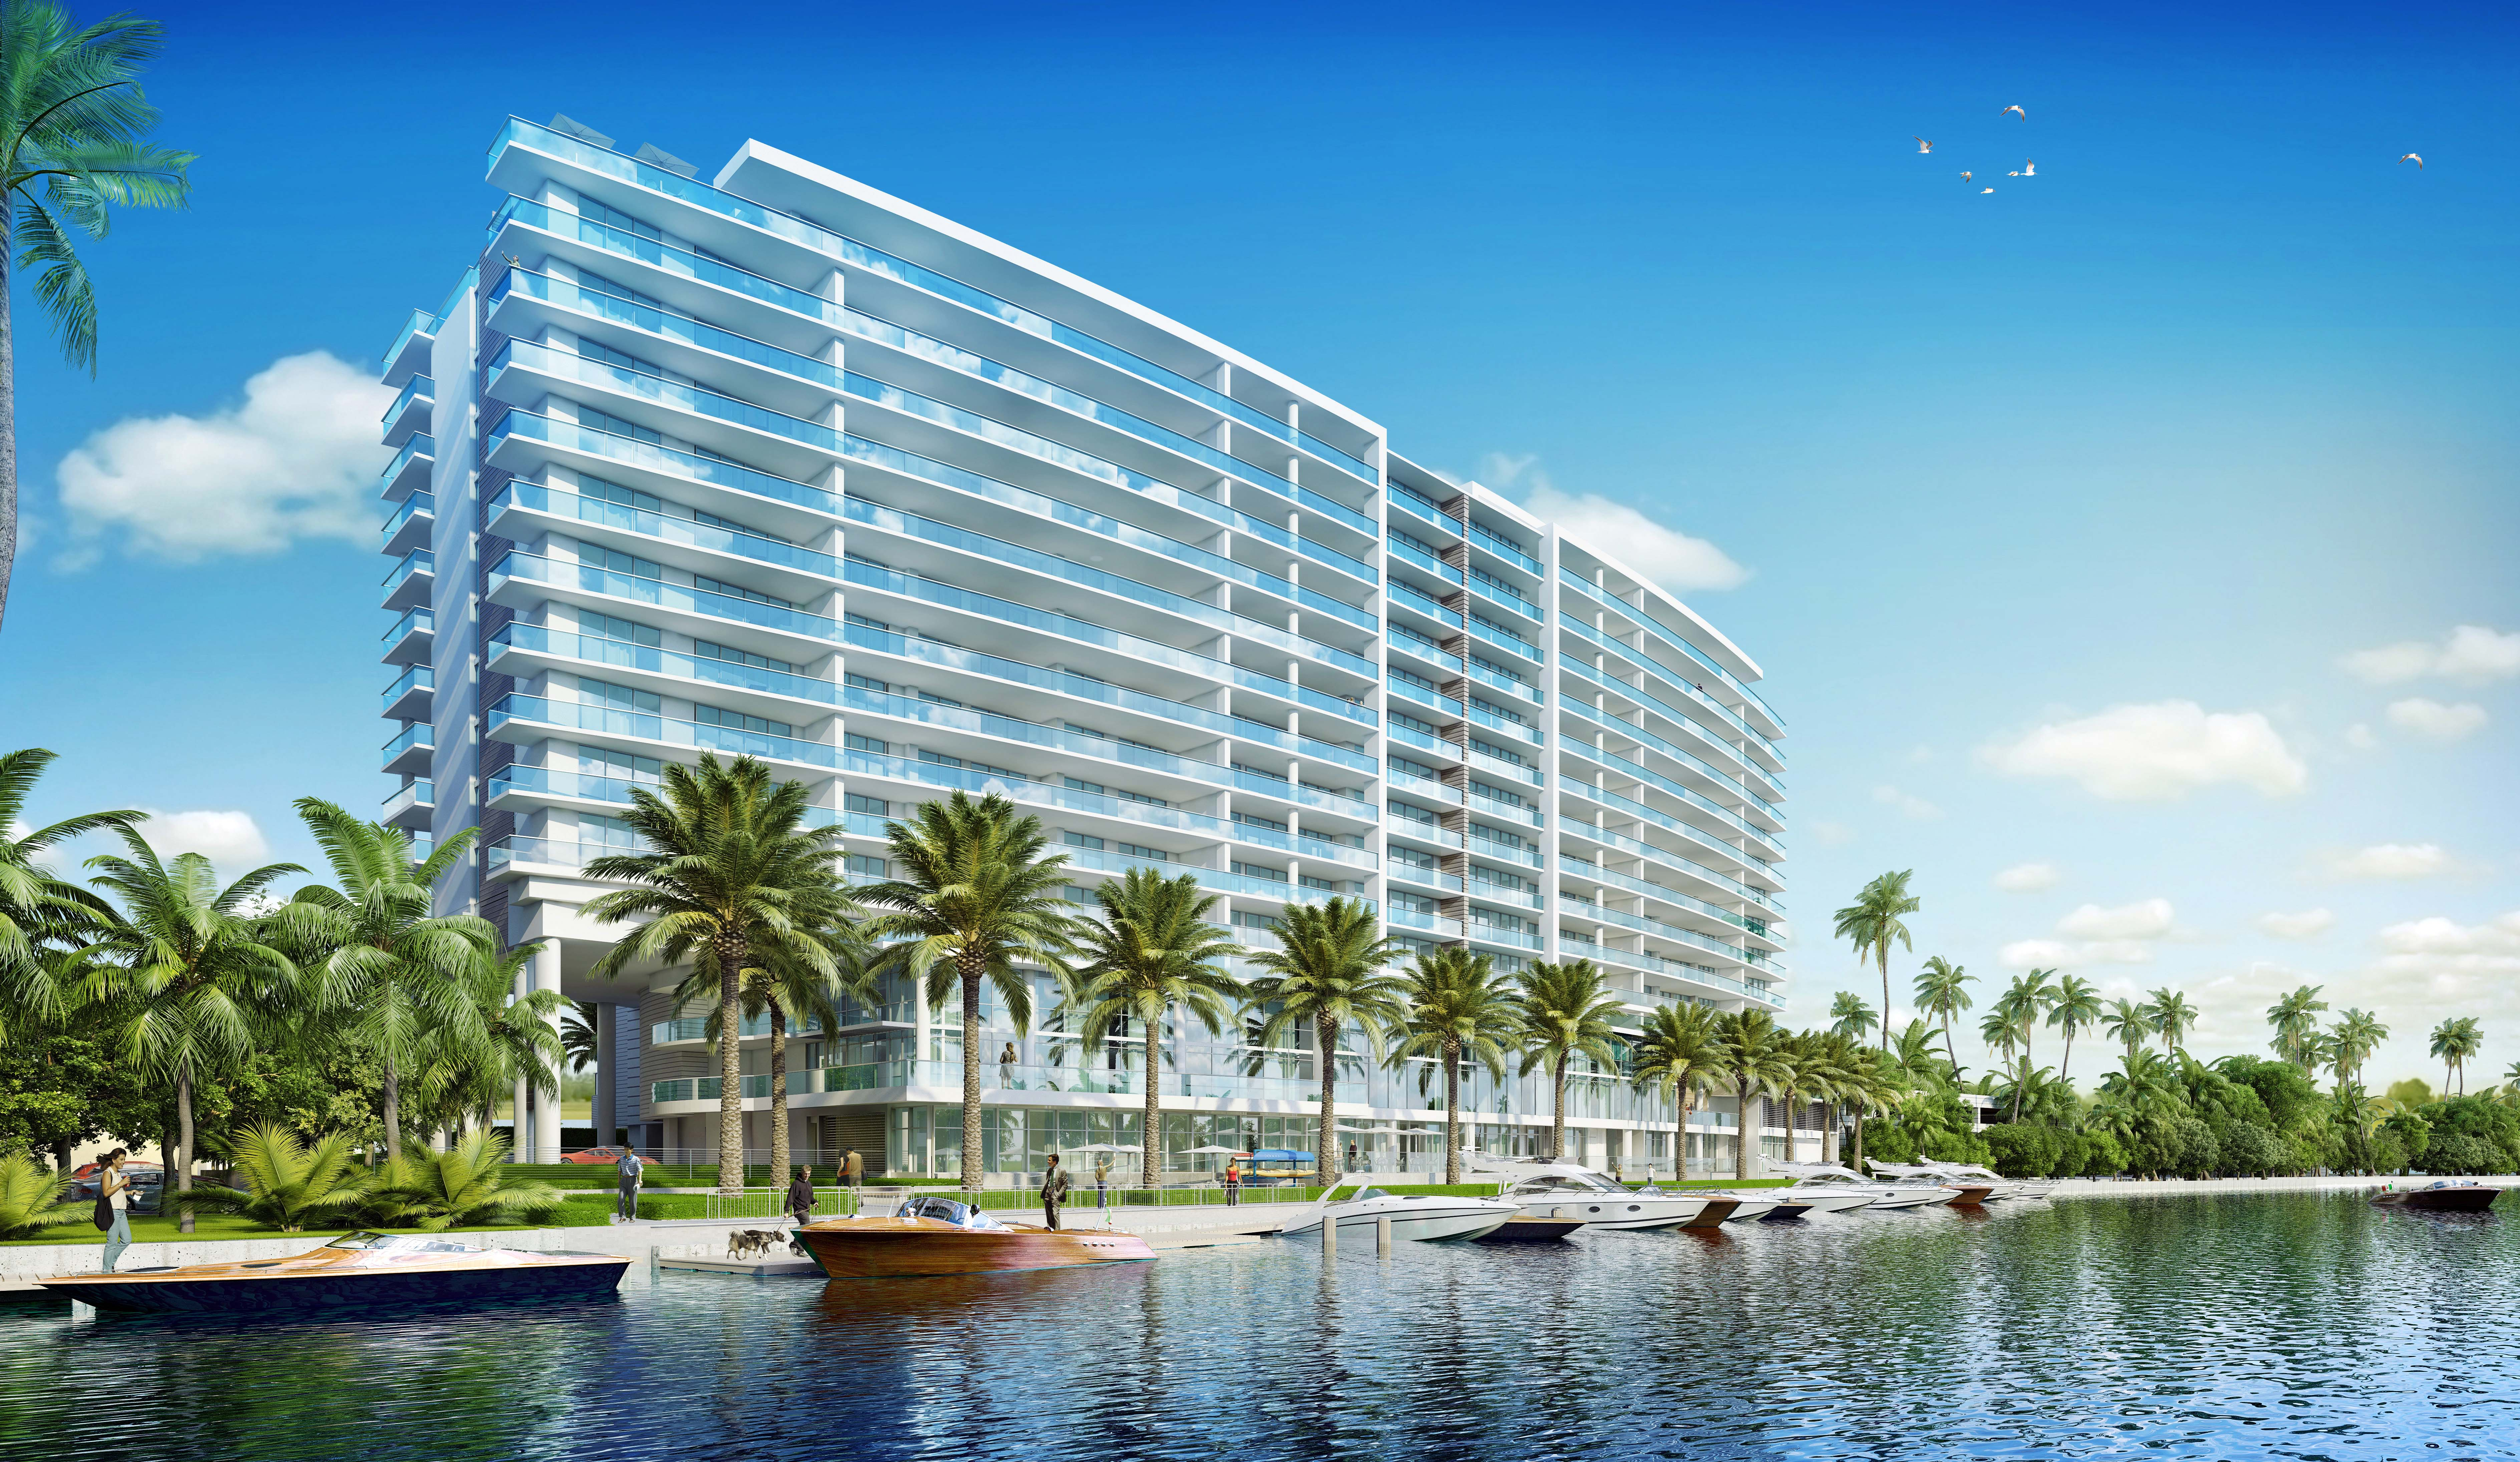 Apartment for Sale at 1180 N Federal Hwy #803 1180 N Federal Hwy 803 Fort Lauderdale, Florida, 33304 United States